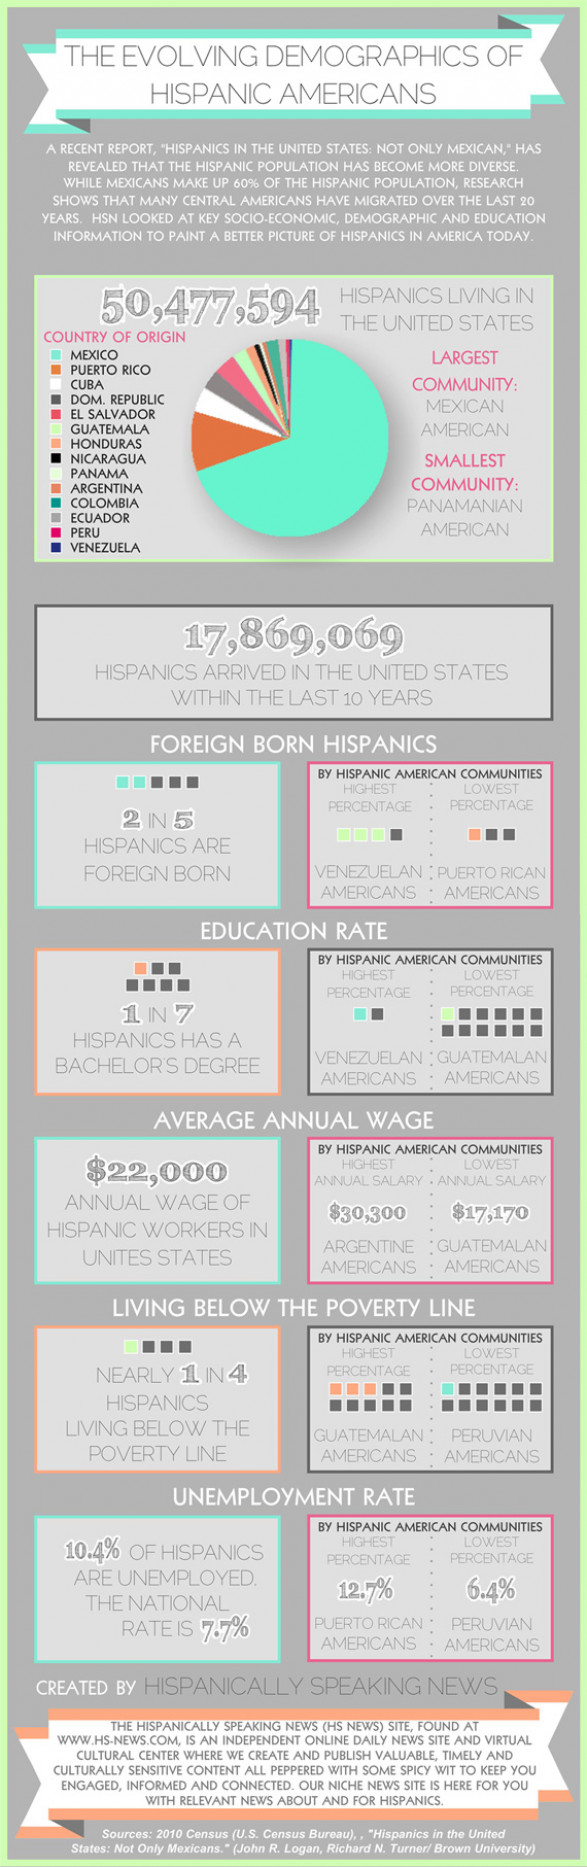 The Evolving Demographics of Hispanic Americans